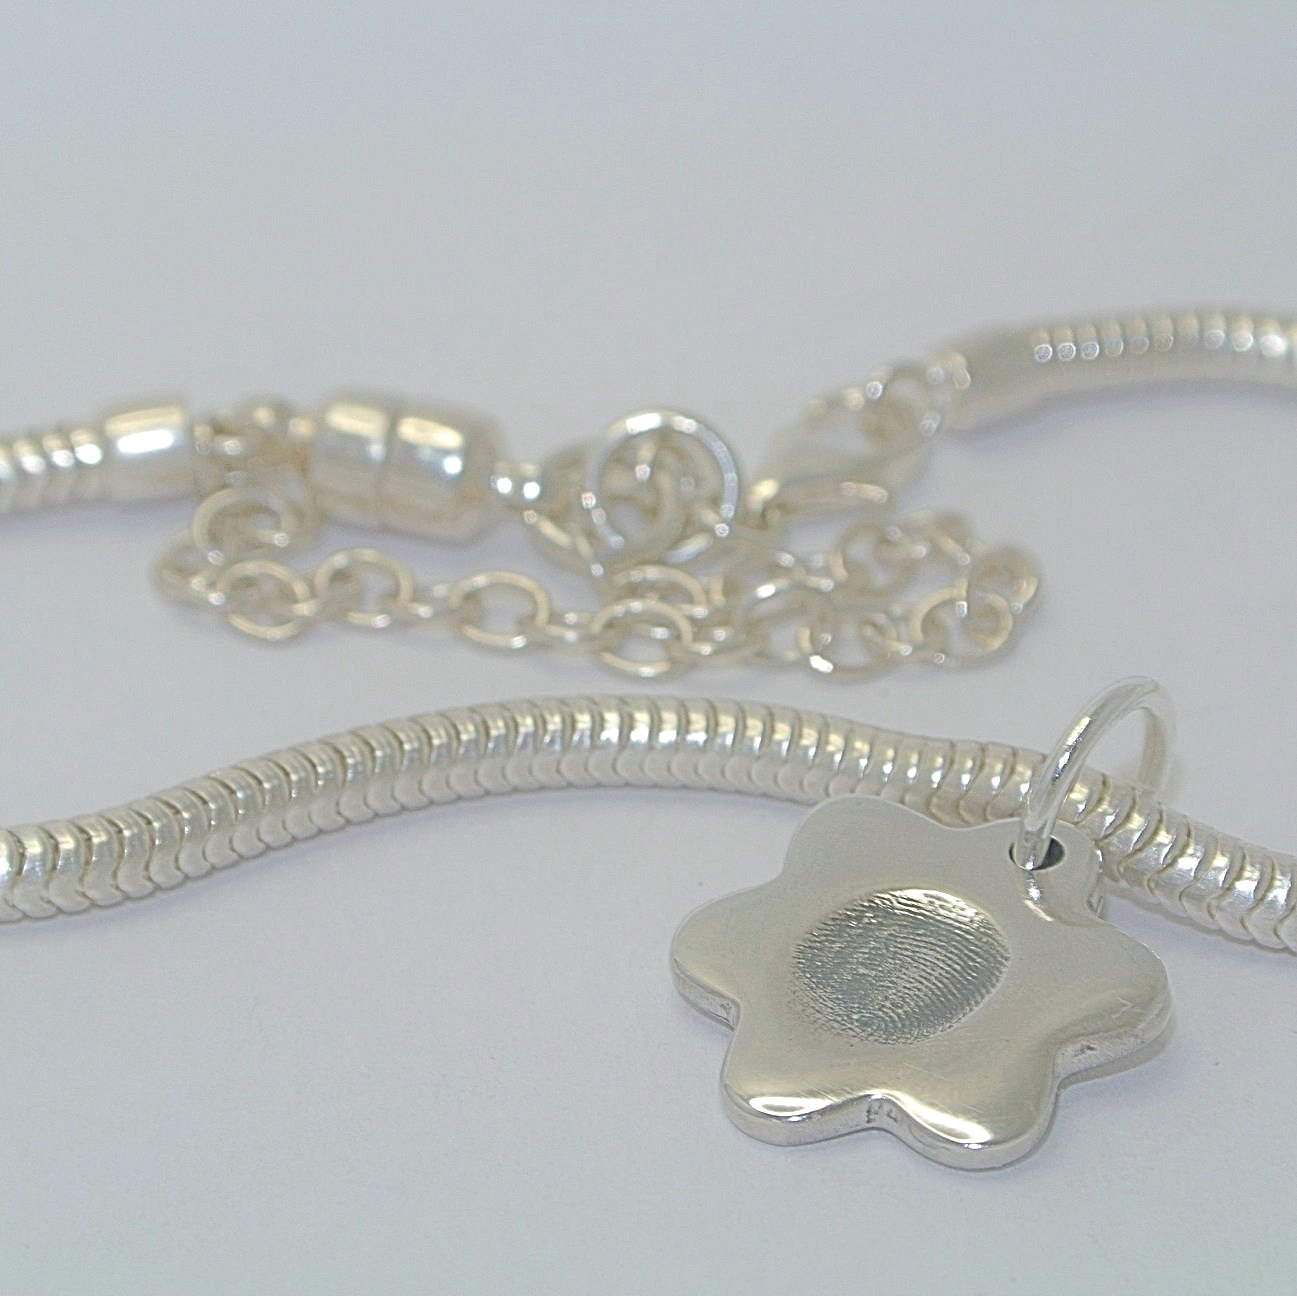 Bracelet Charm Sterling Silver Fingerprint Jewellery